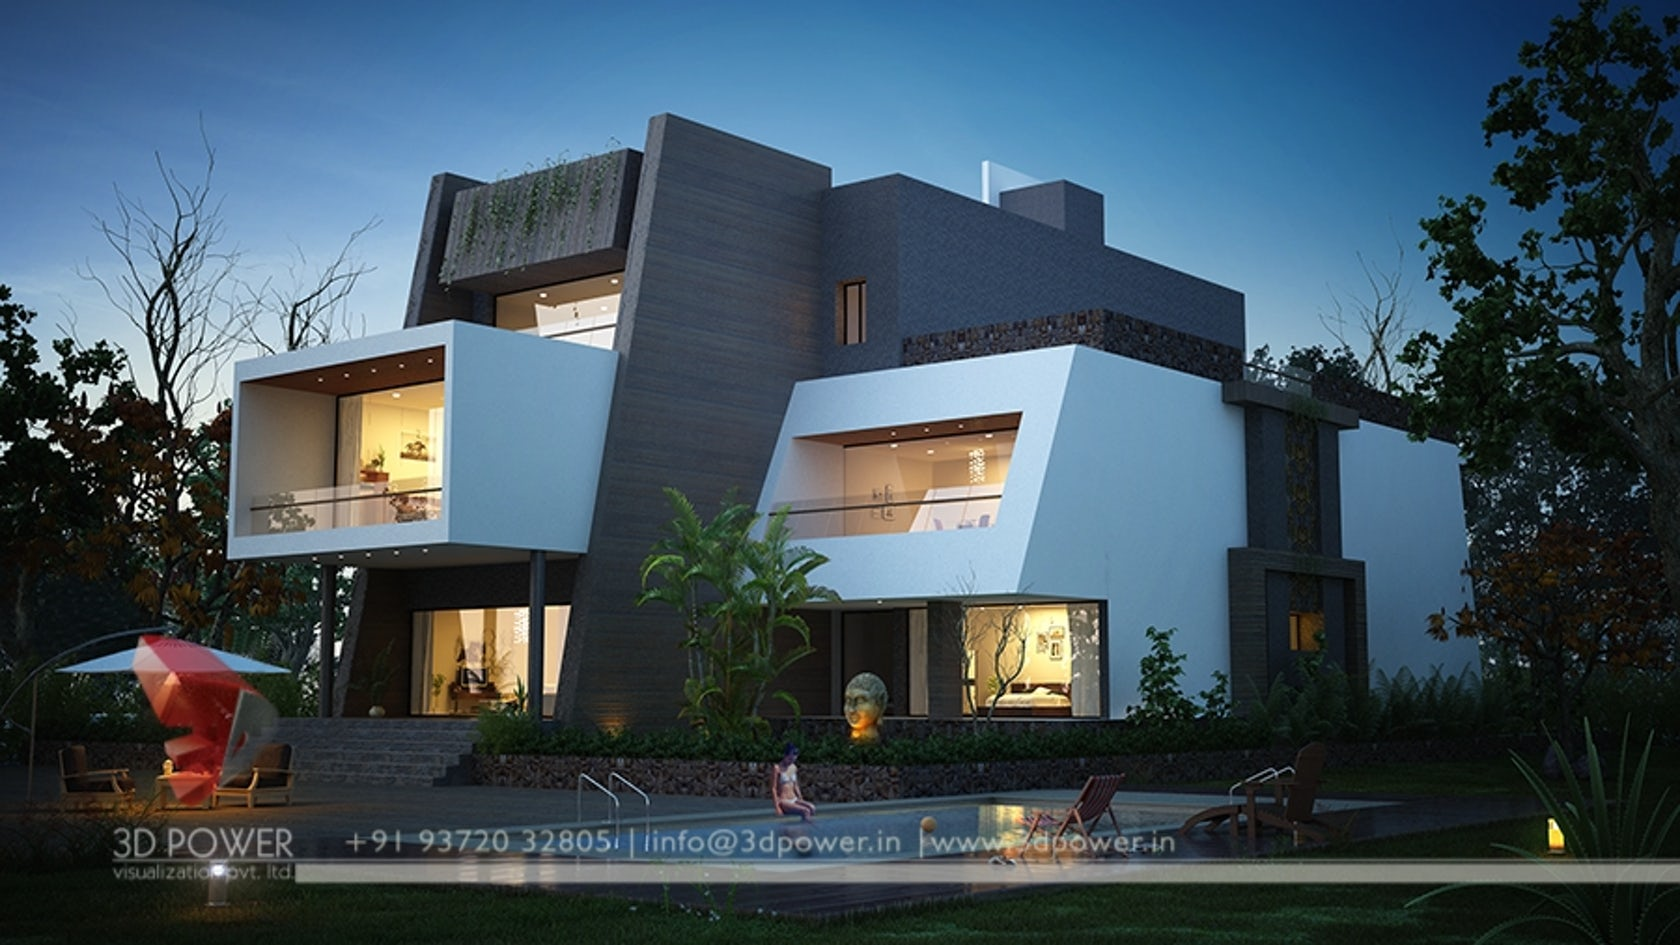 3d power visualization pvt ltd architizer for 3d home exterior design tool download